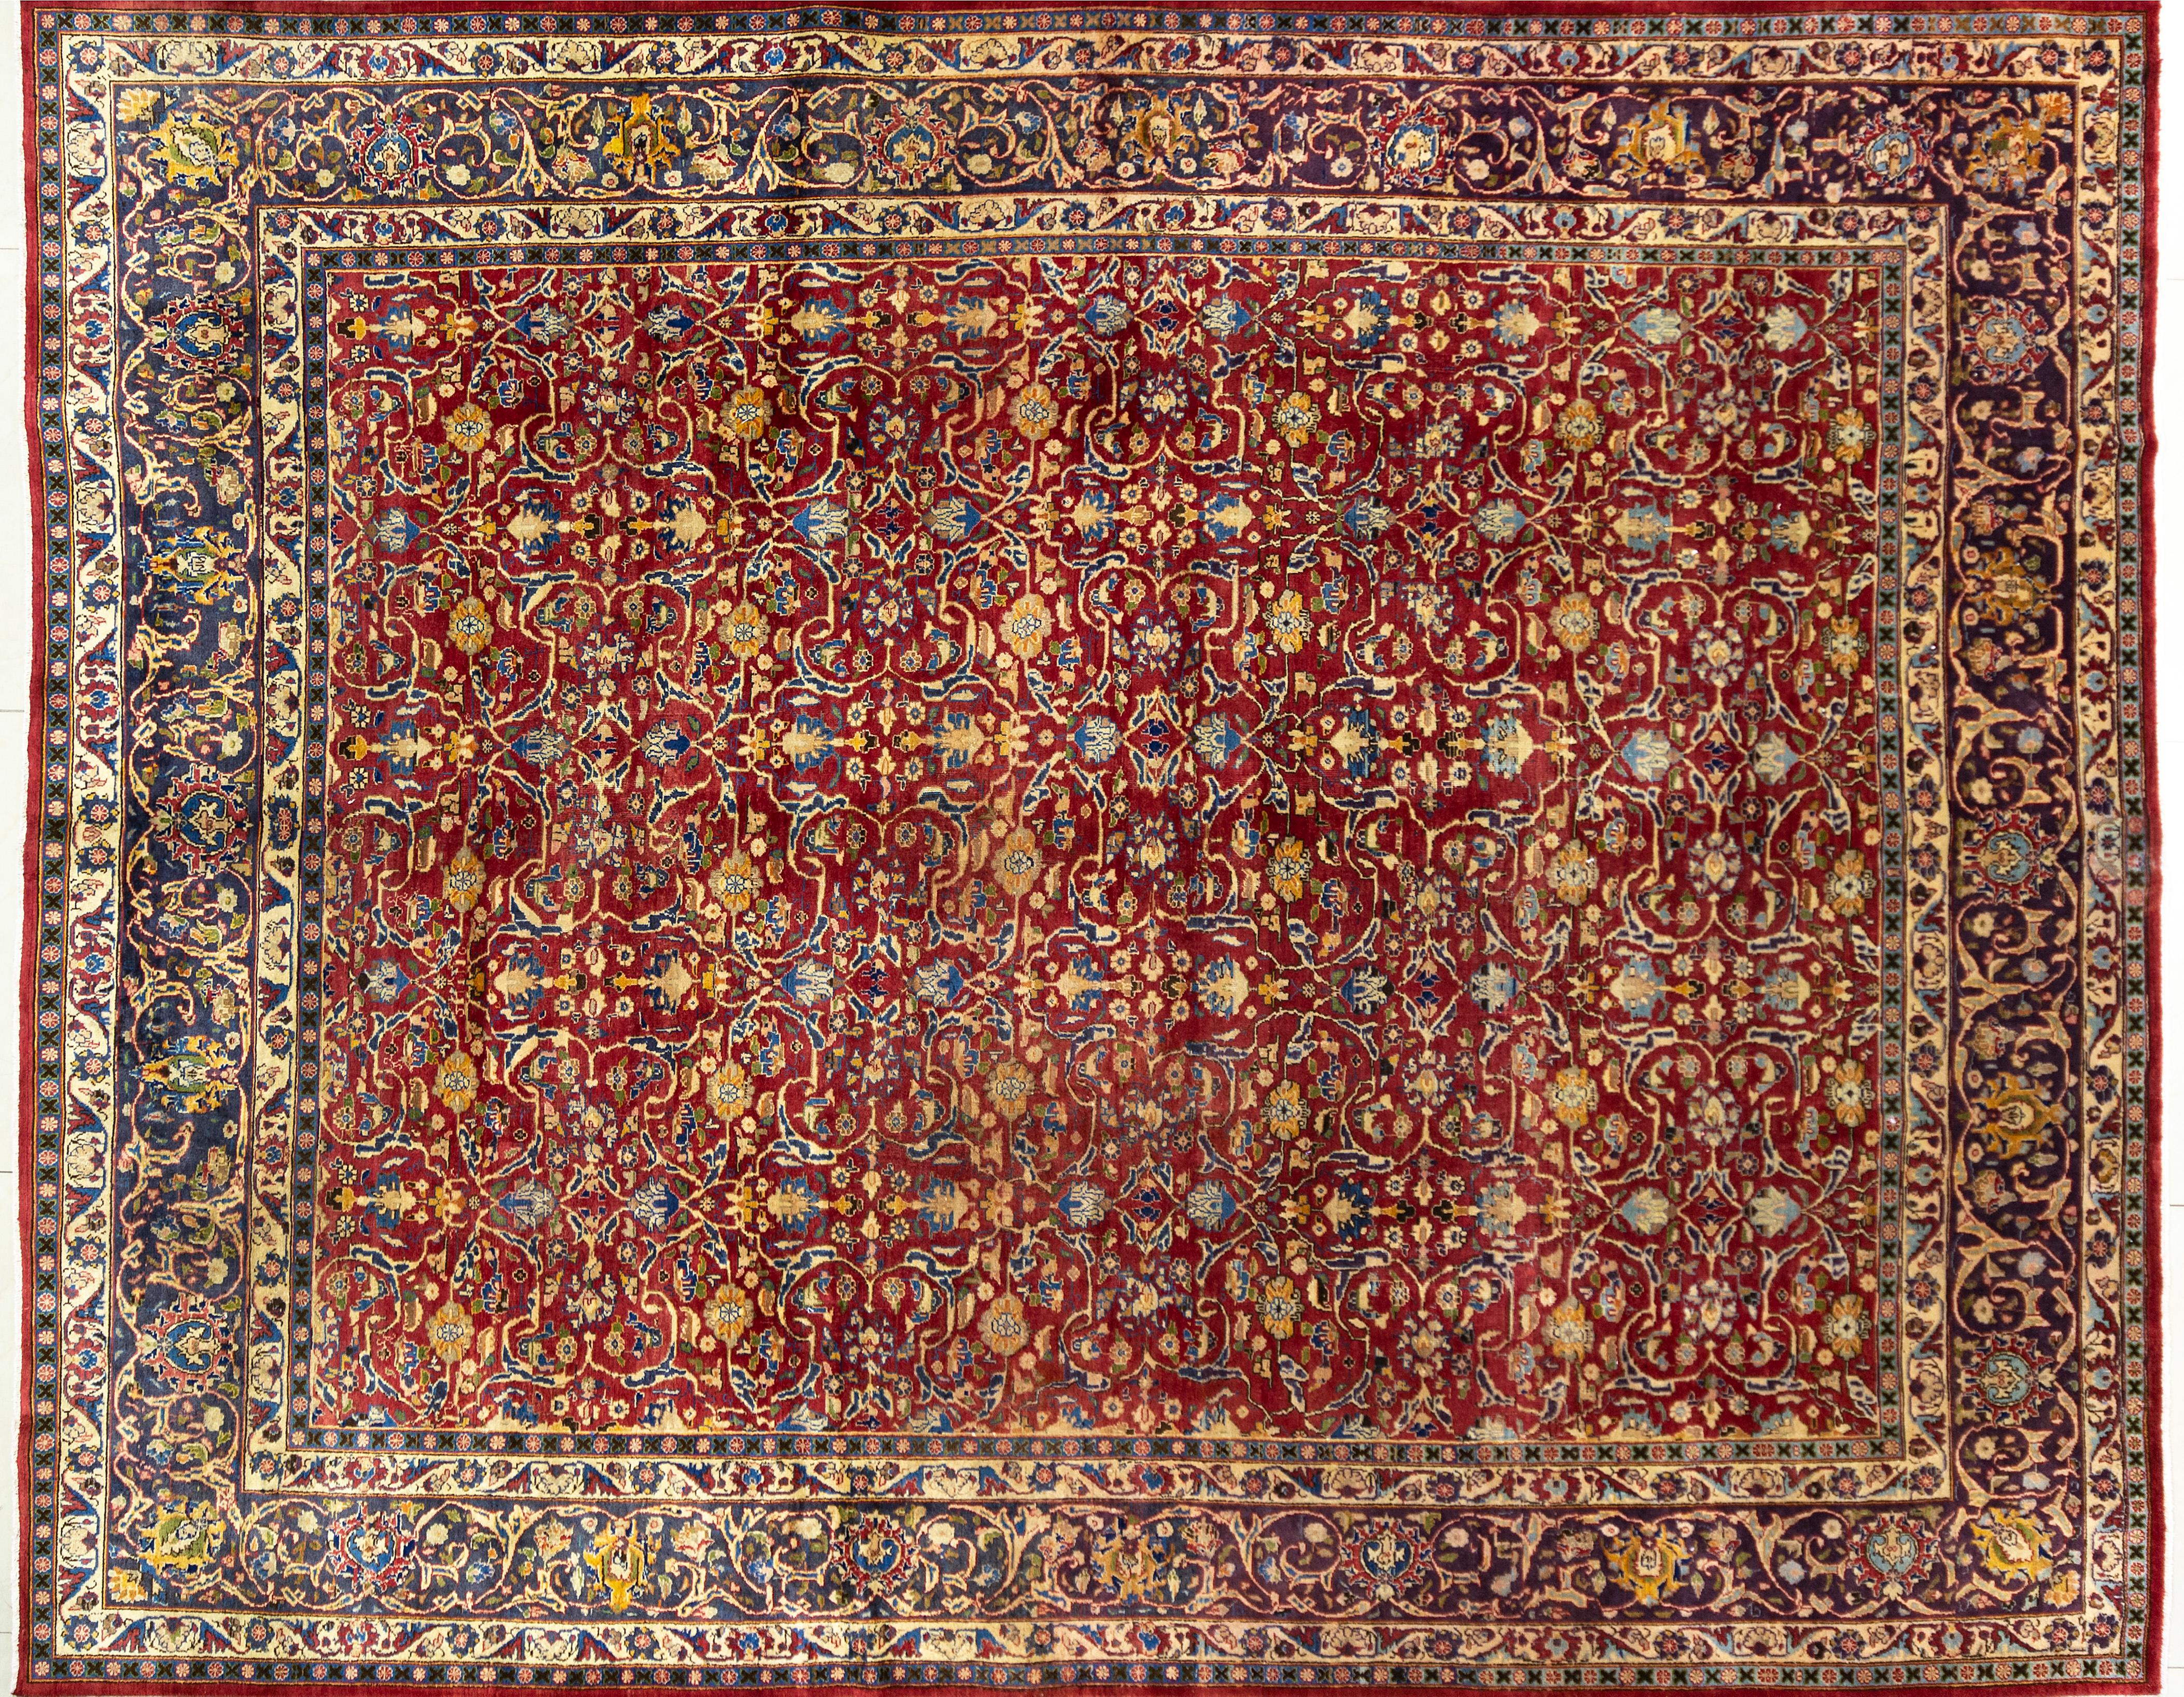 A Persian Hand Knotted Mashad Carpet, 370 x 295